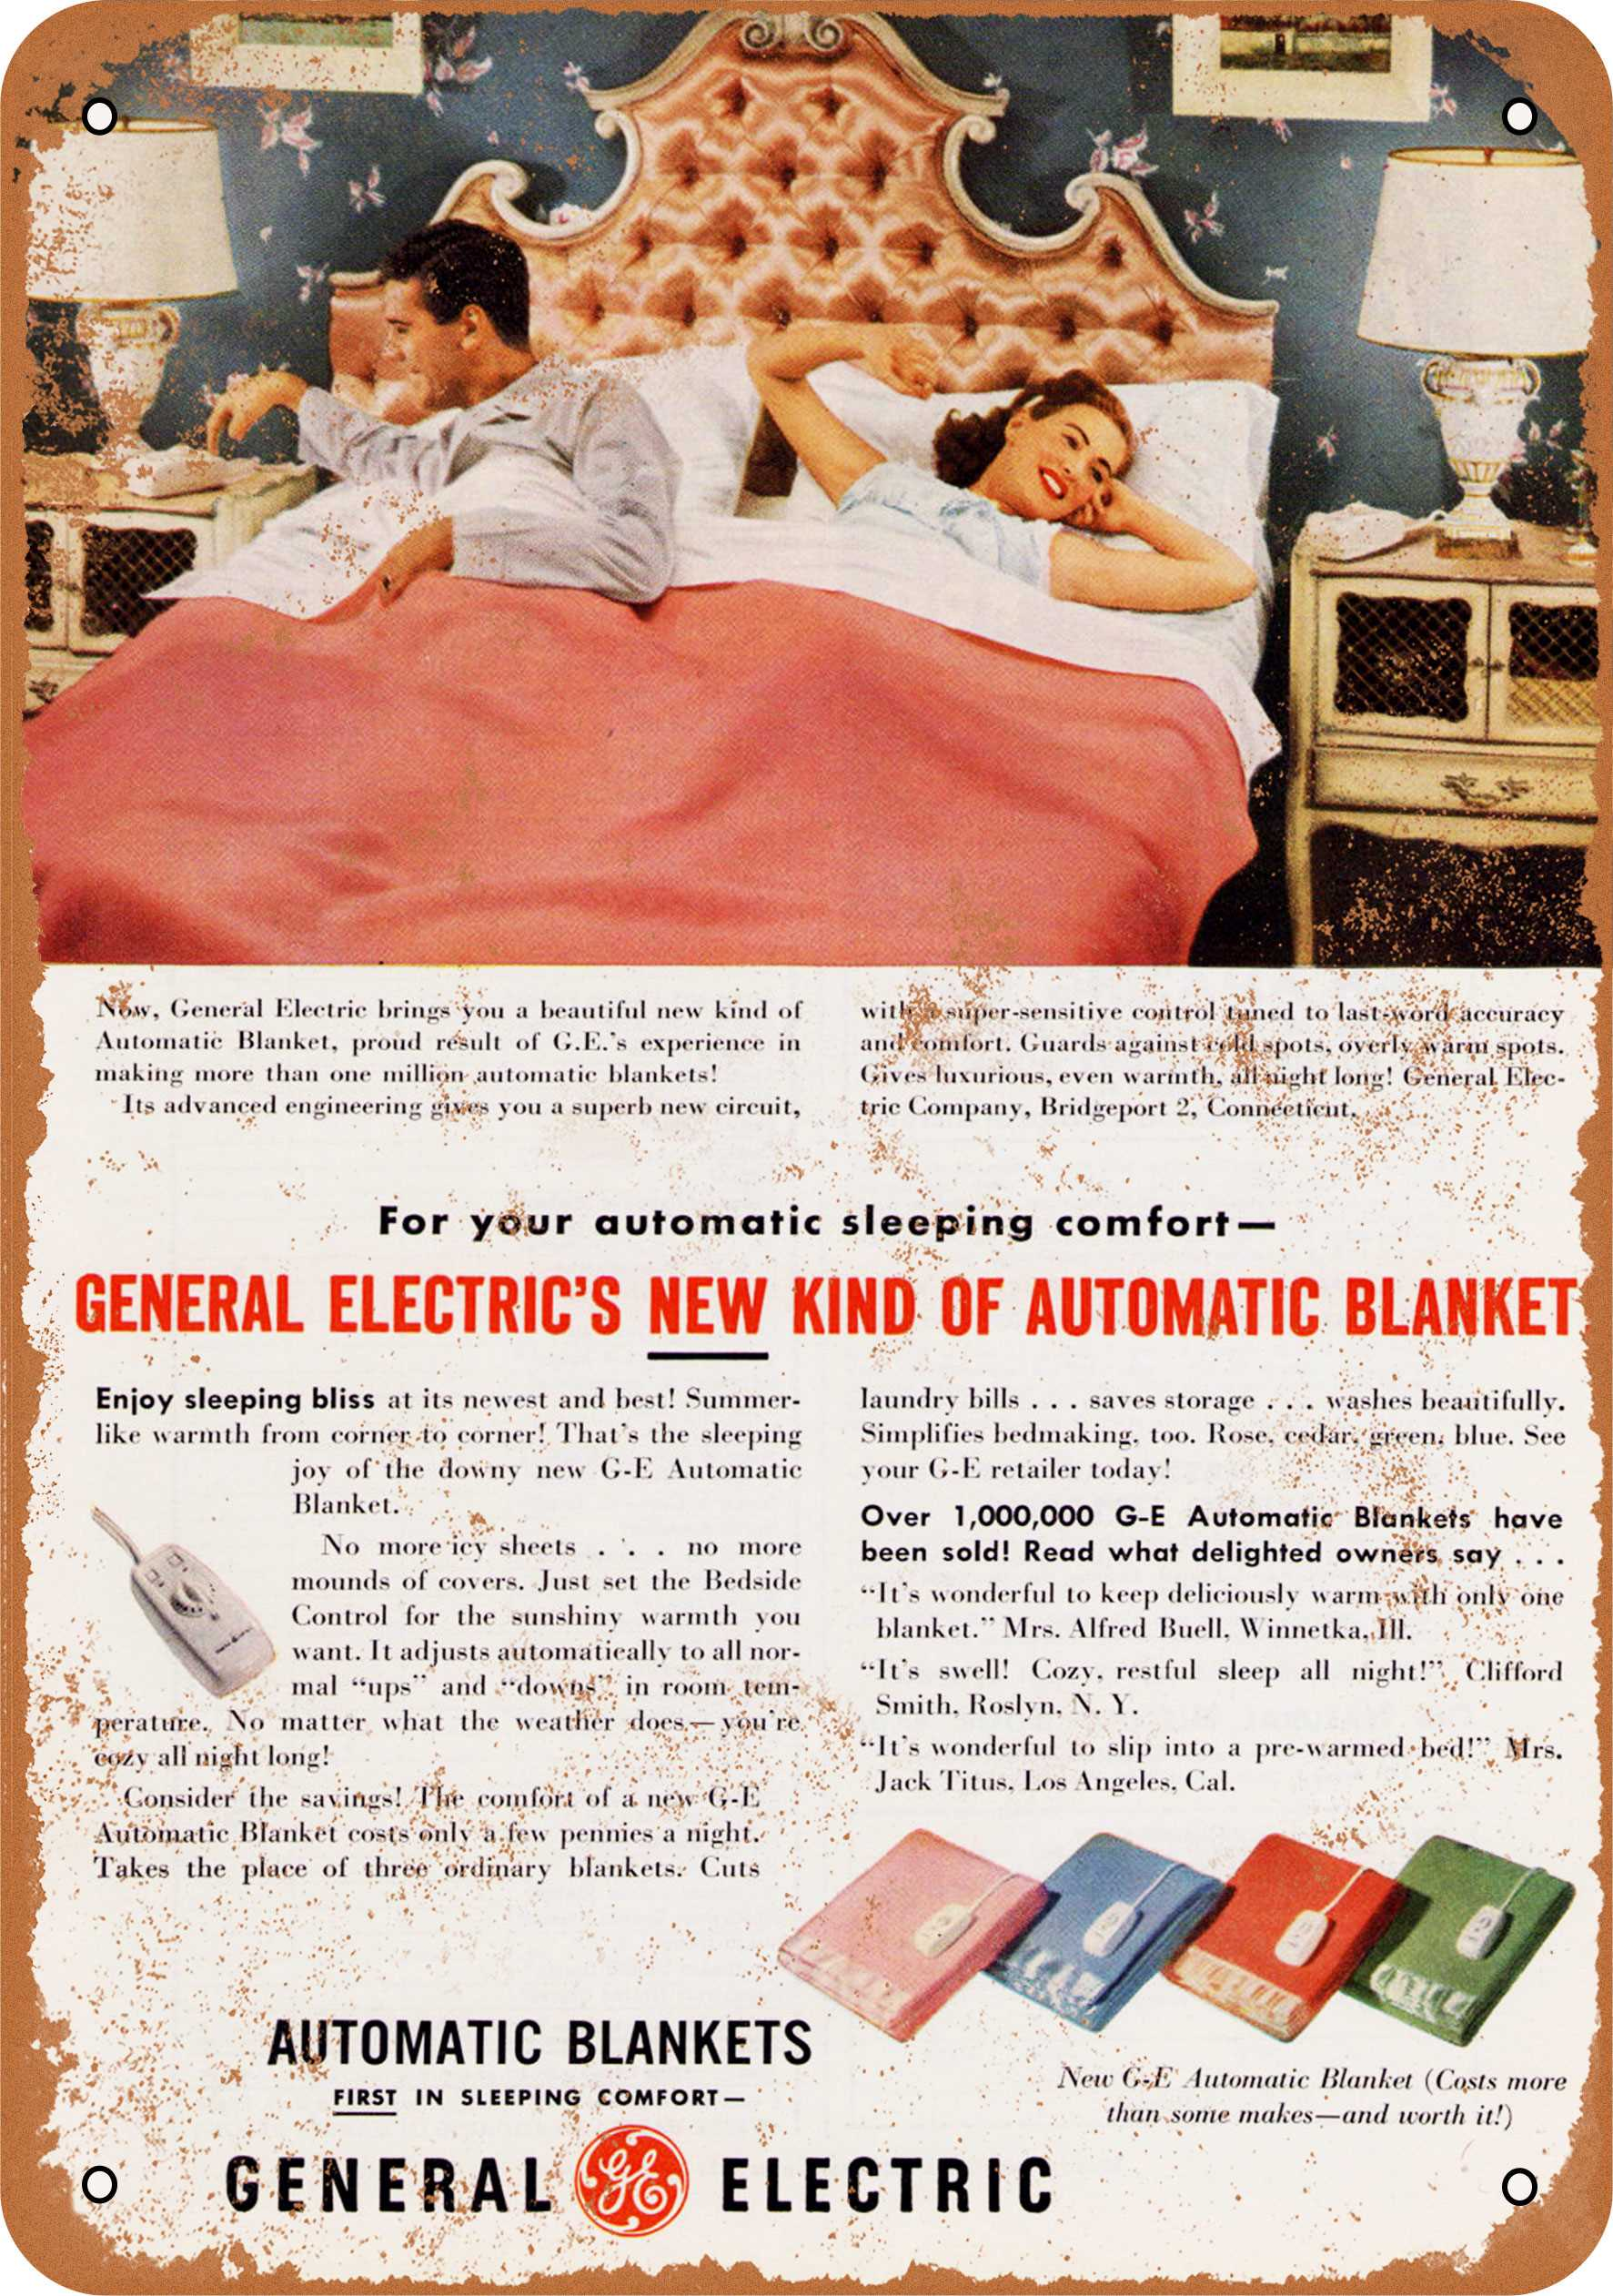 """9"""" x 12"""" 1950 General Electric Automatic Blankets Vintage Look Reproduction Metal Sign 8074L"""